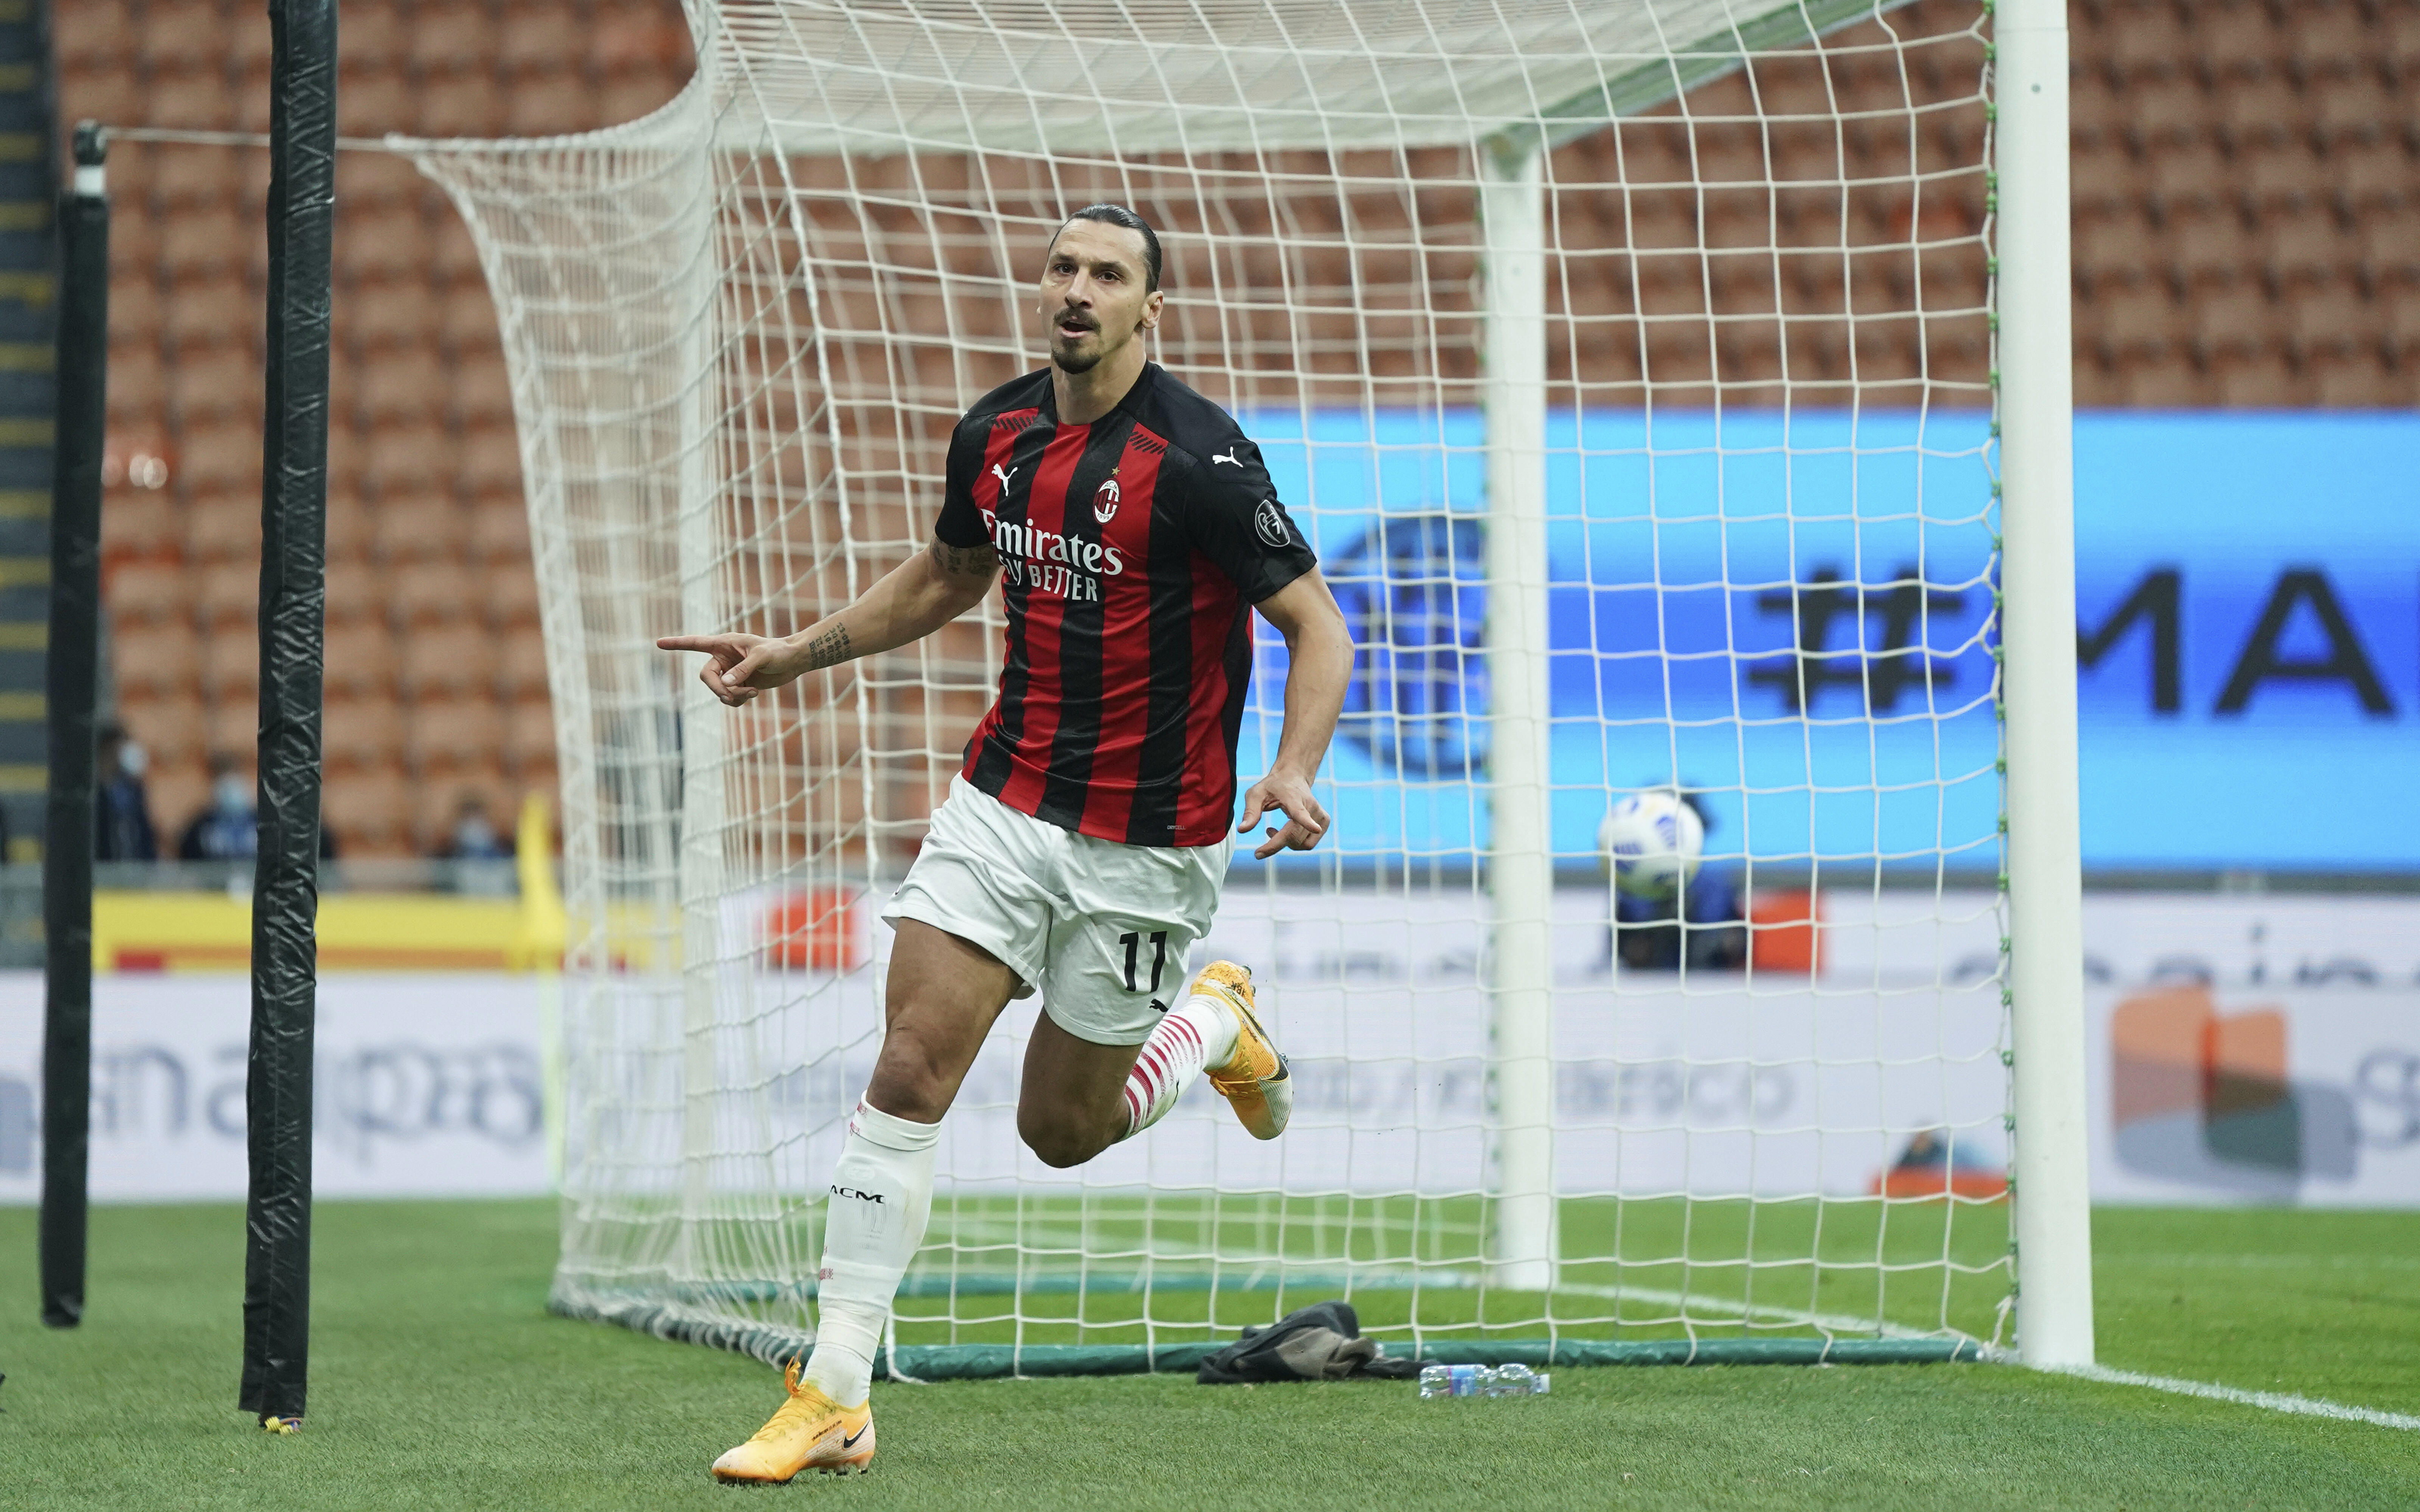 Celtic Vs Ac Milan Free Live Stream 10 22 20 Watch Uefa Europa League Group Stage Online Time Tv Channel Nj Com